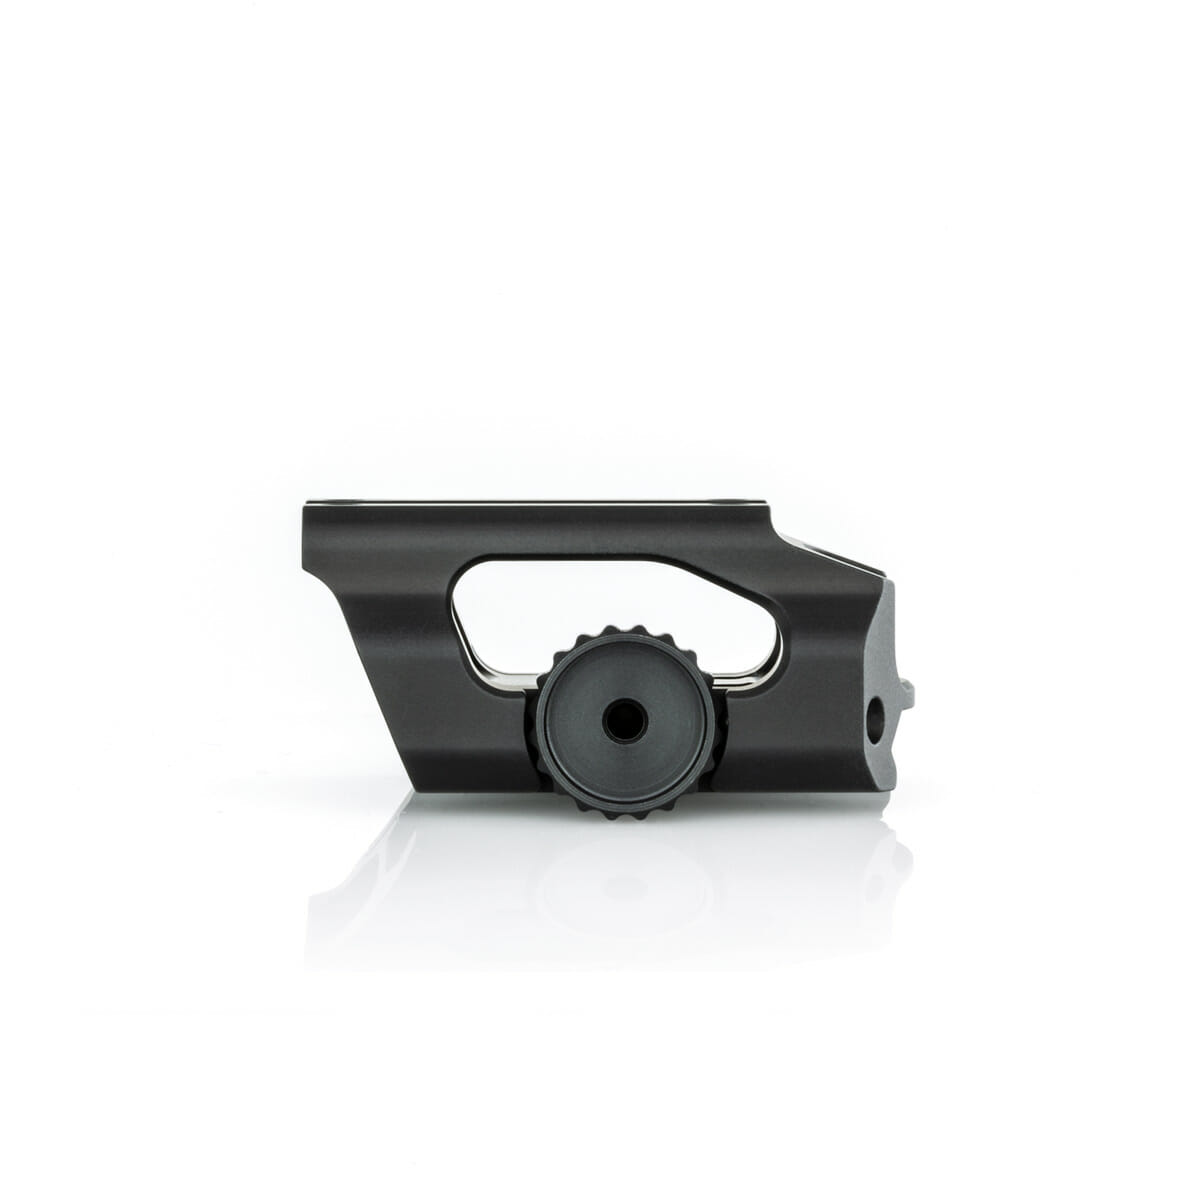 Scalarworks_SW0500_trijicon_mro_mount_side